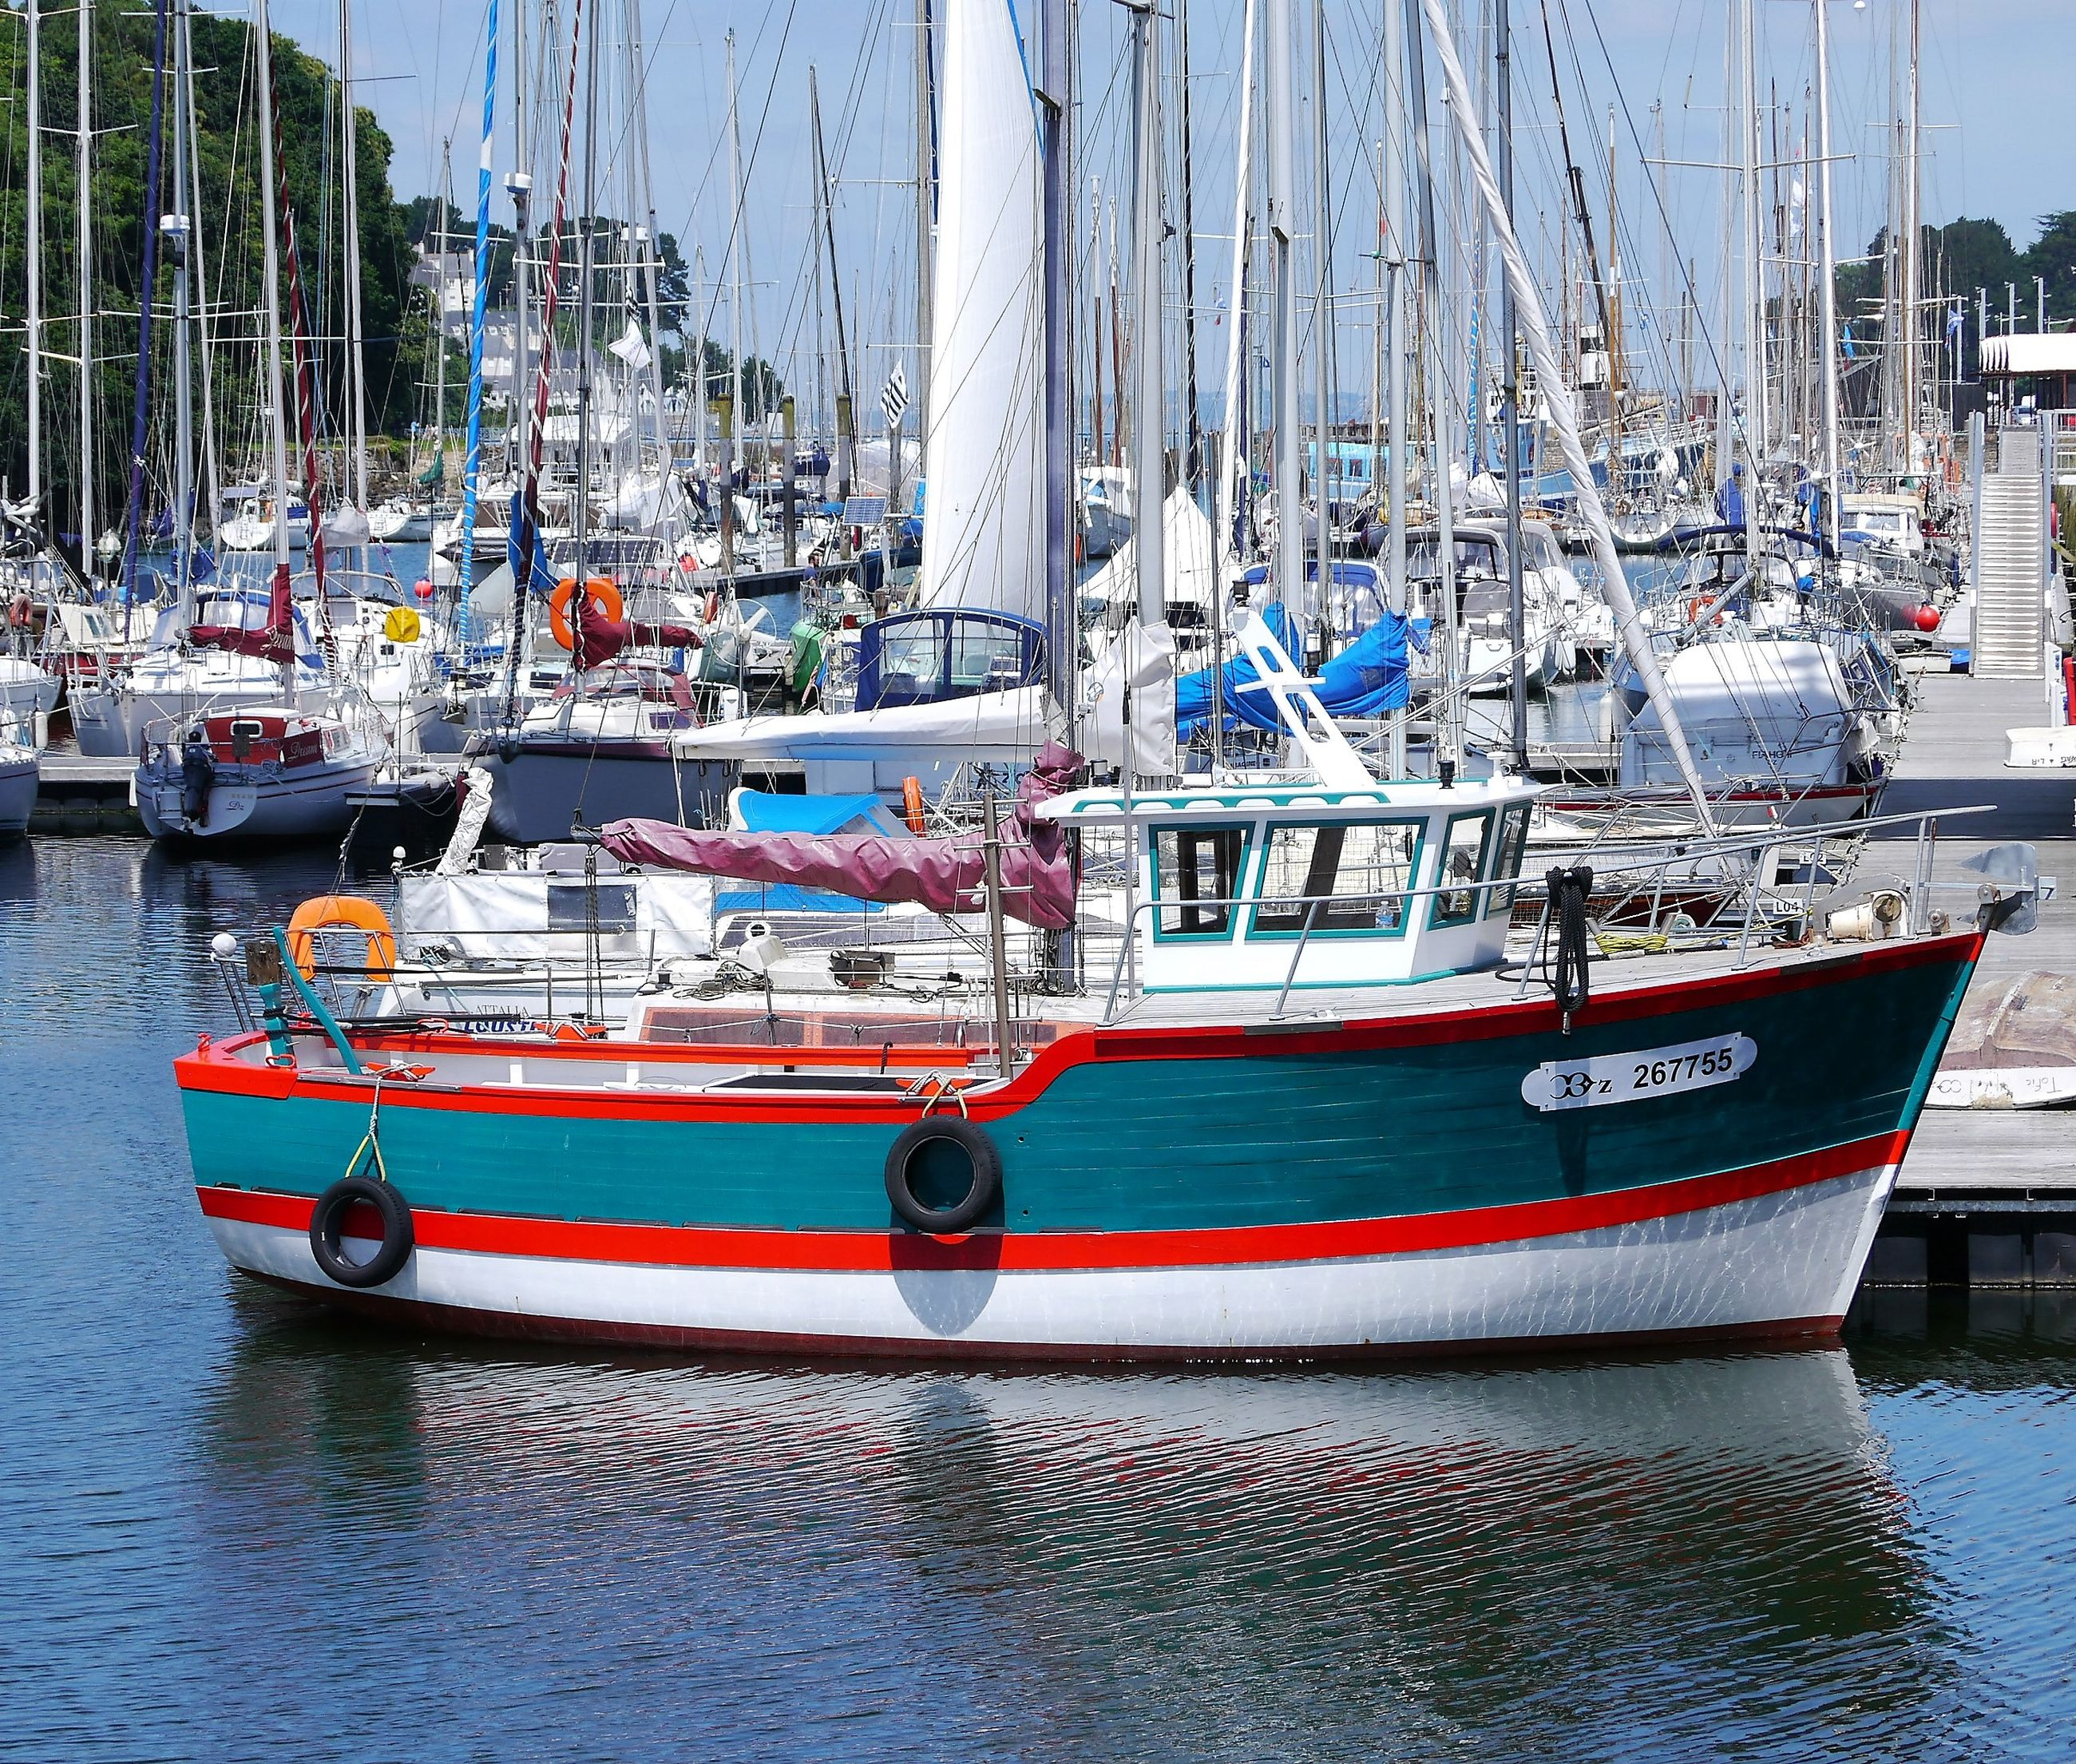 transportation, nautical vessel, mode of transport, moored, boat, waterfront, water, mast, city, sailboat, tranquility, day, outdoors, scenics, nature, harbor, sky, tranquil scene, sea, no people, tall - high, city life